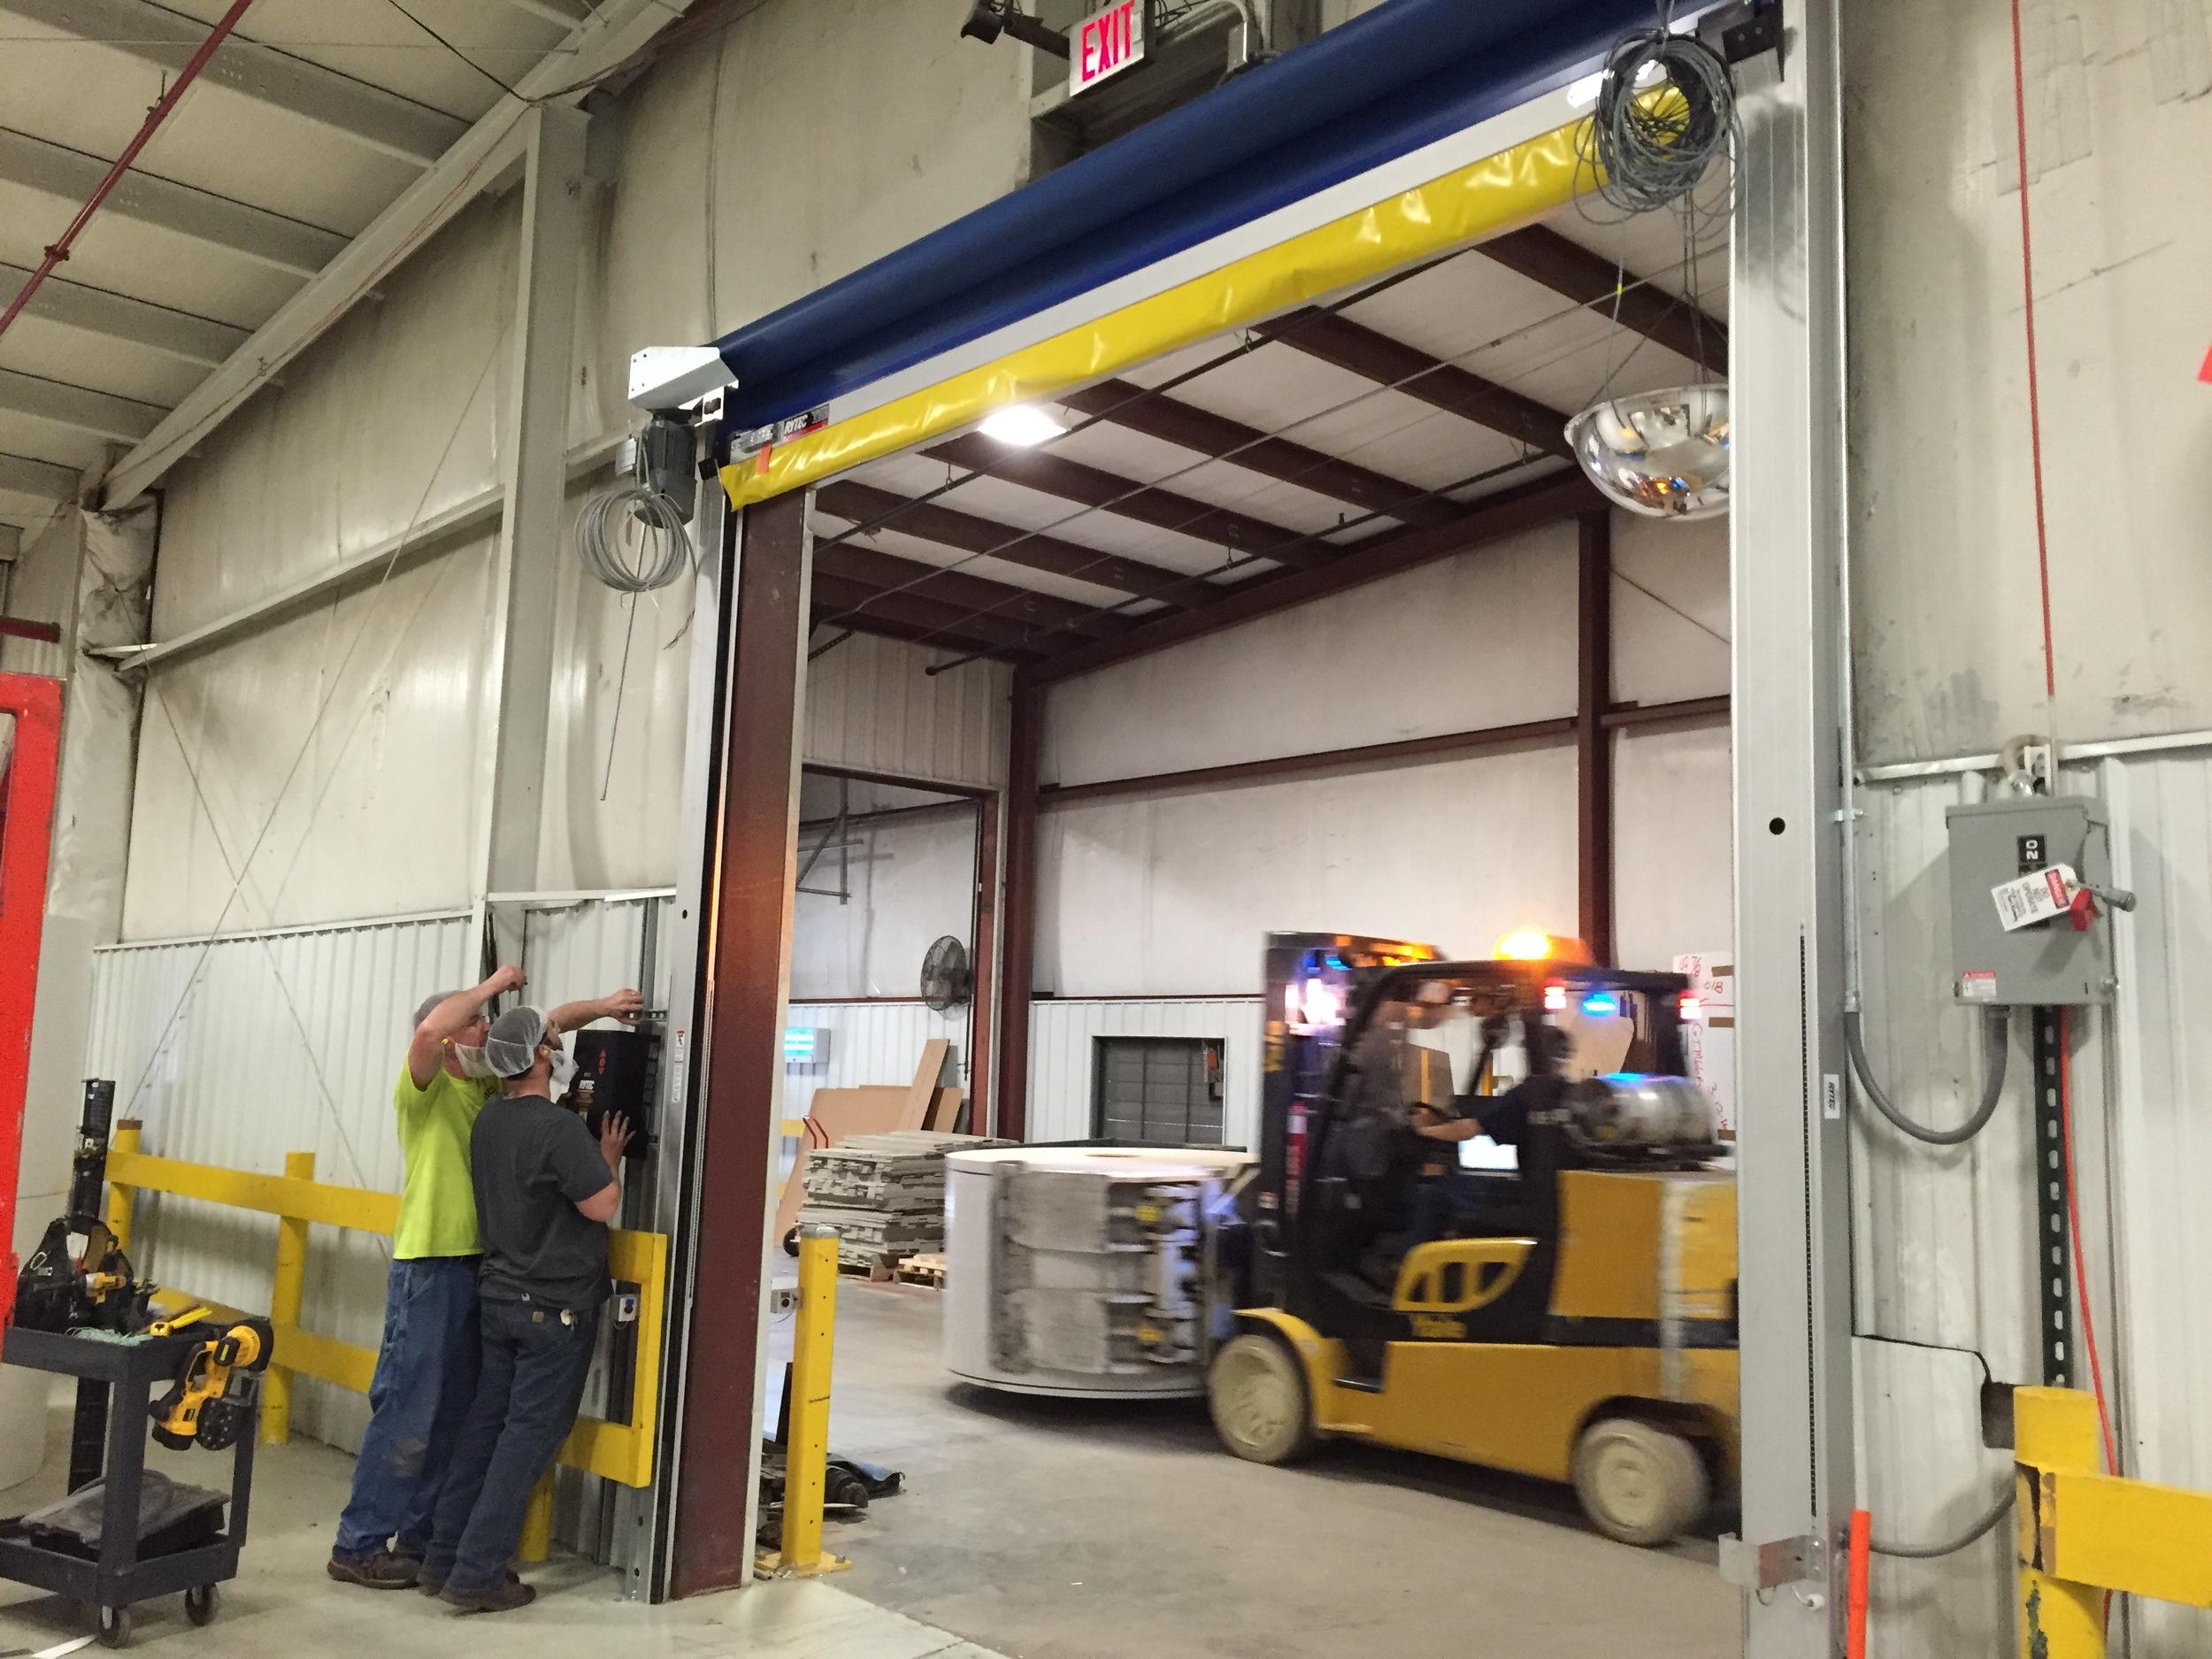 Click image to learn more about turnkey installation of high-speed doors